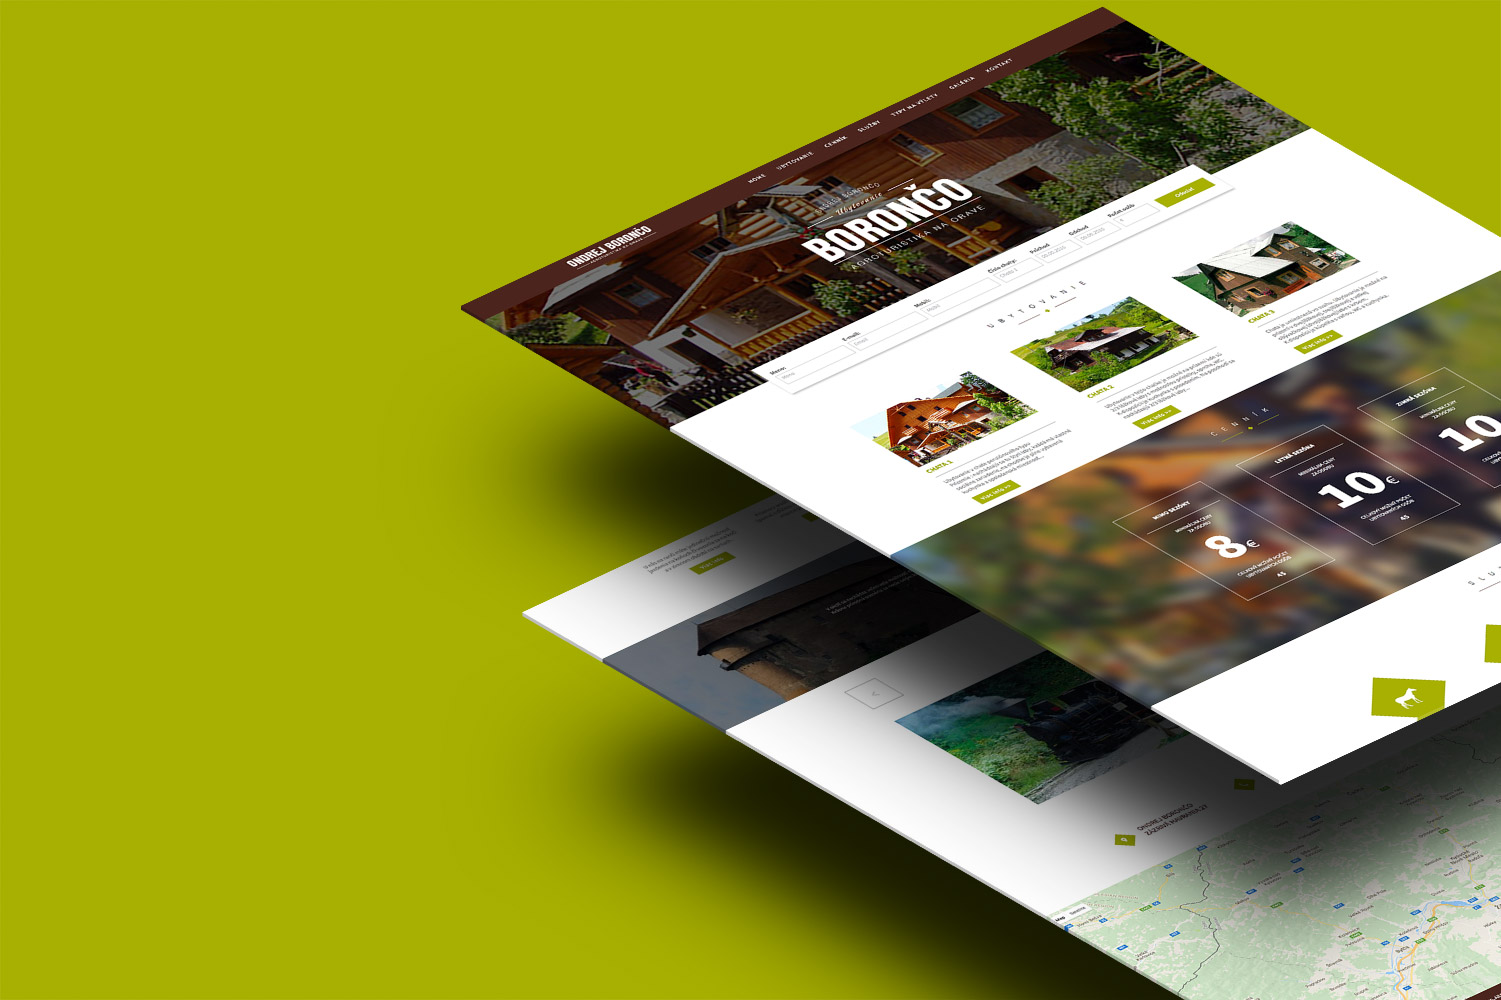 Boronco, web design image